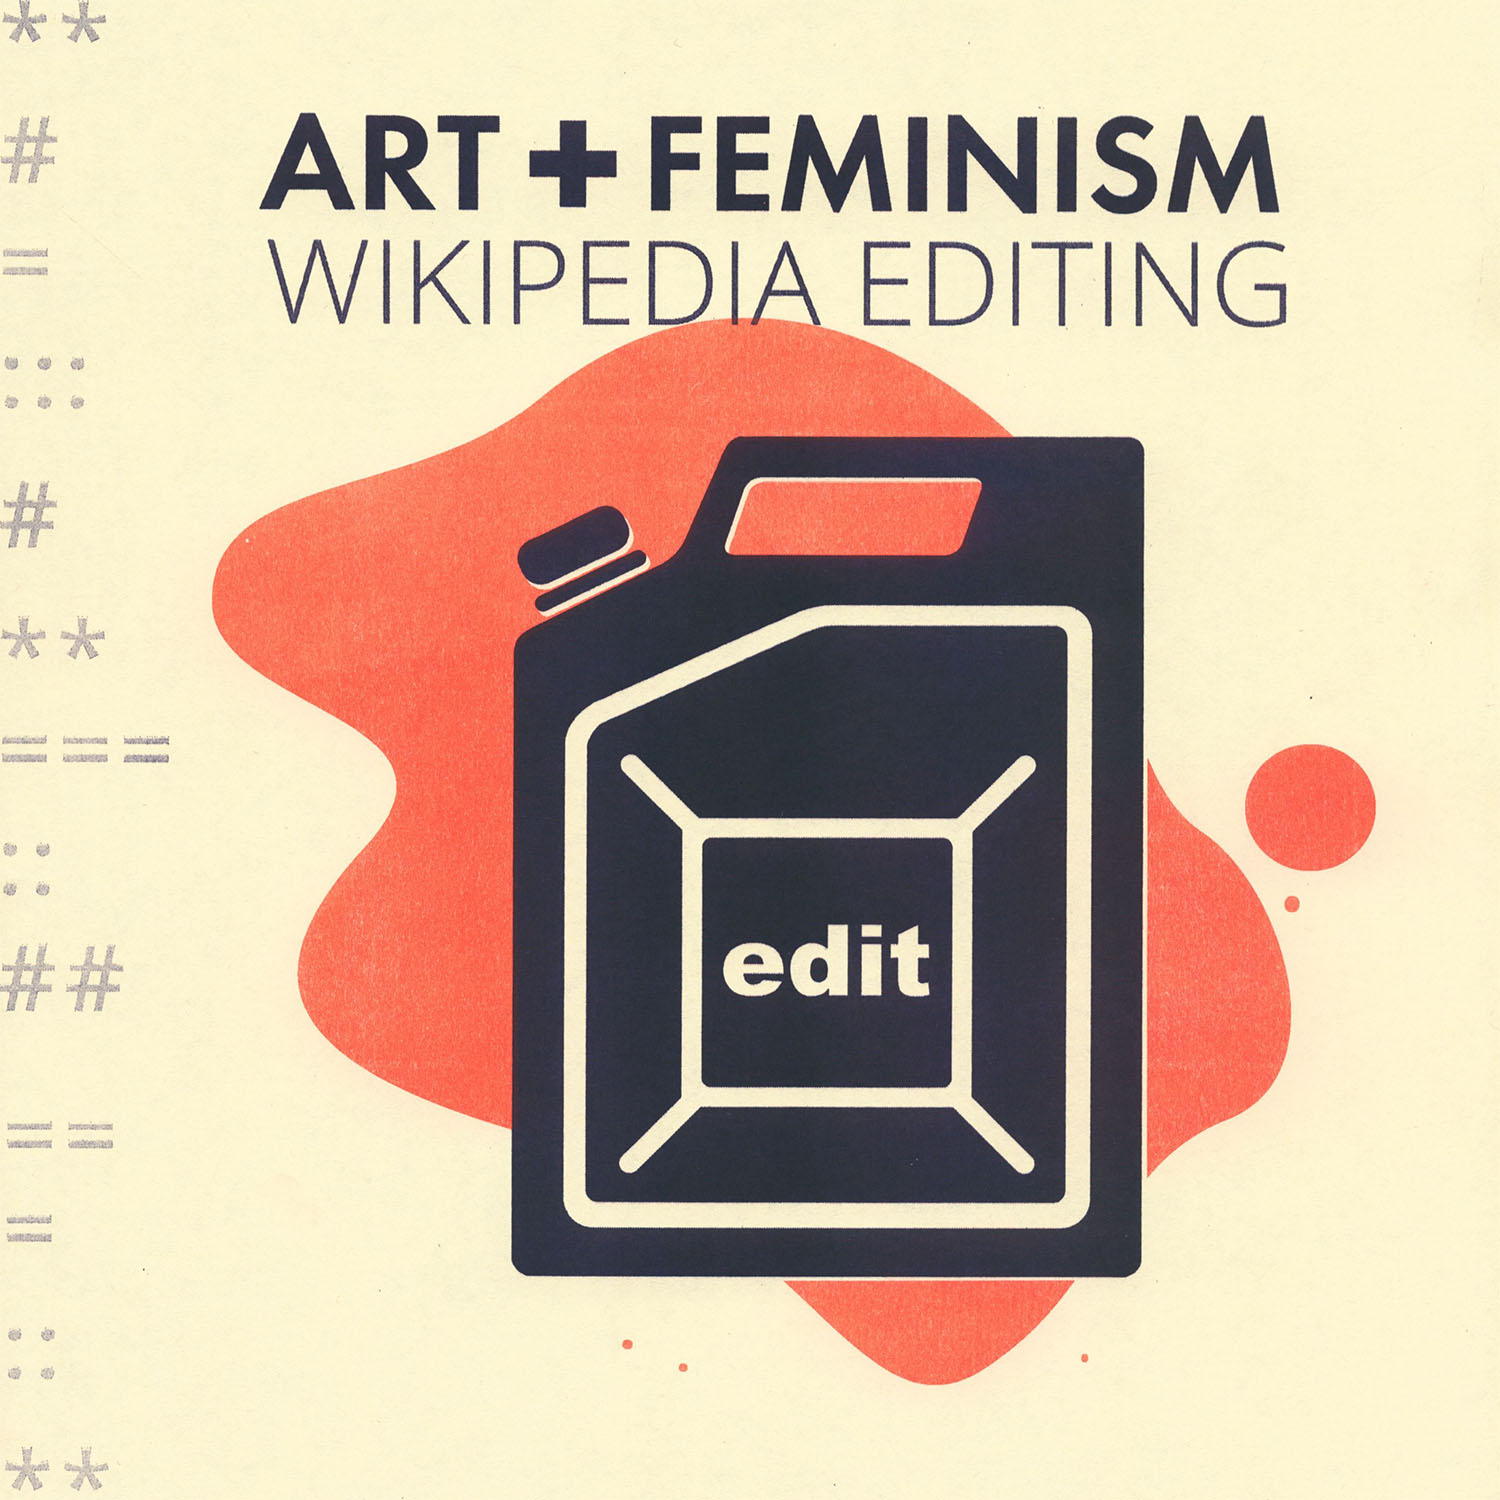 Art + Feminism Wikipedia Editing